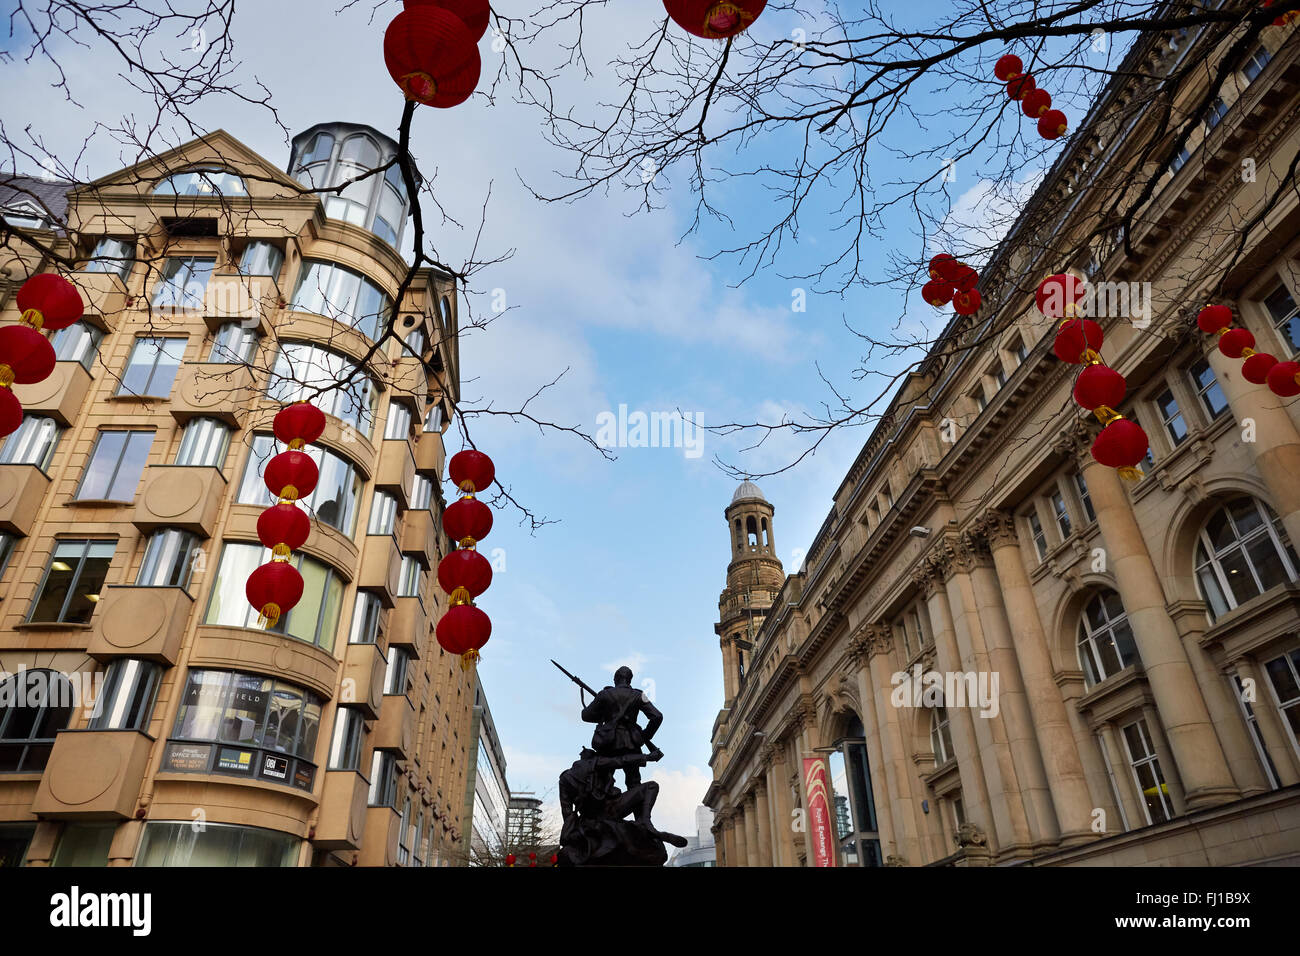 Manchester St Anns Square saint   Chinese paper lantern red hanging sand stone buildings copyspace     GB UK Great - Stock Image